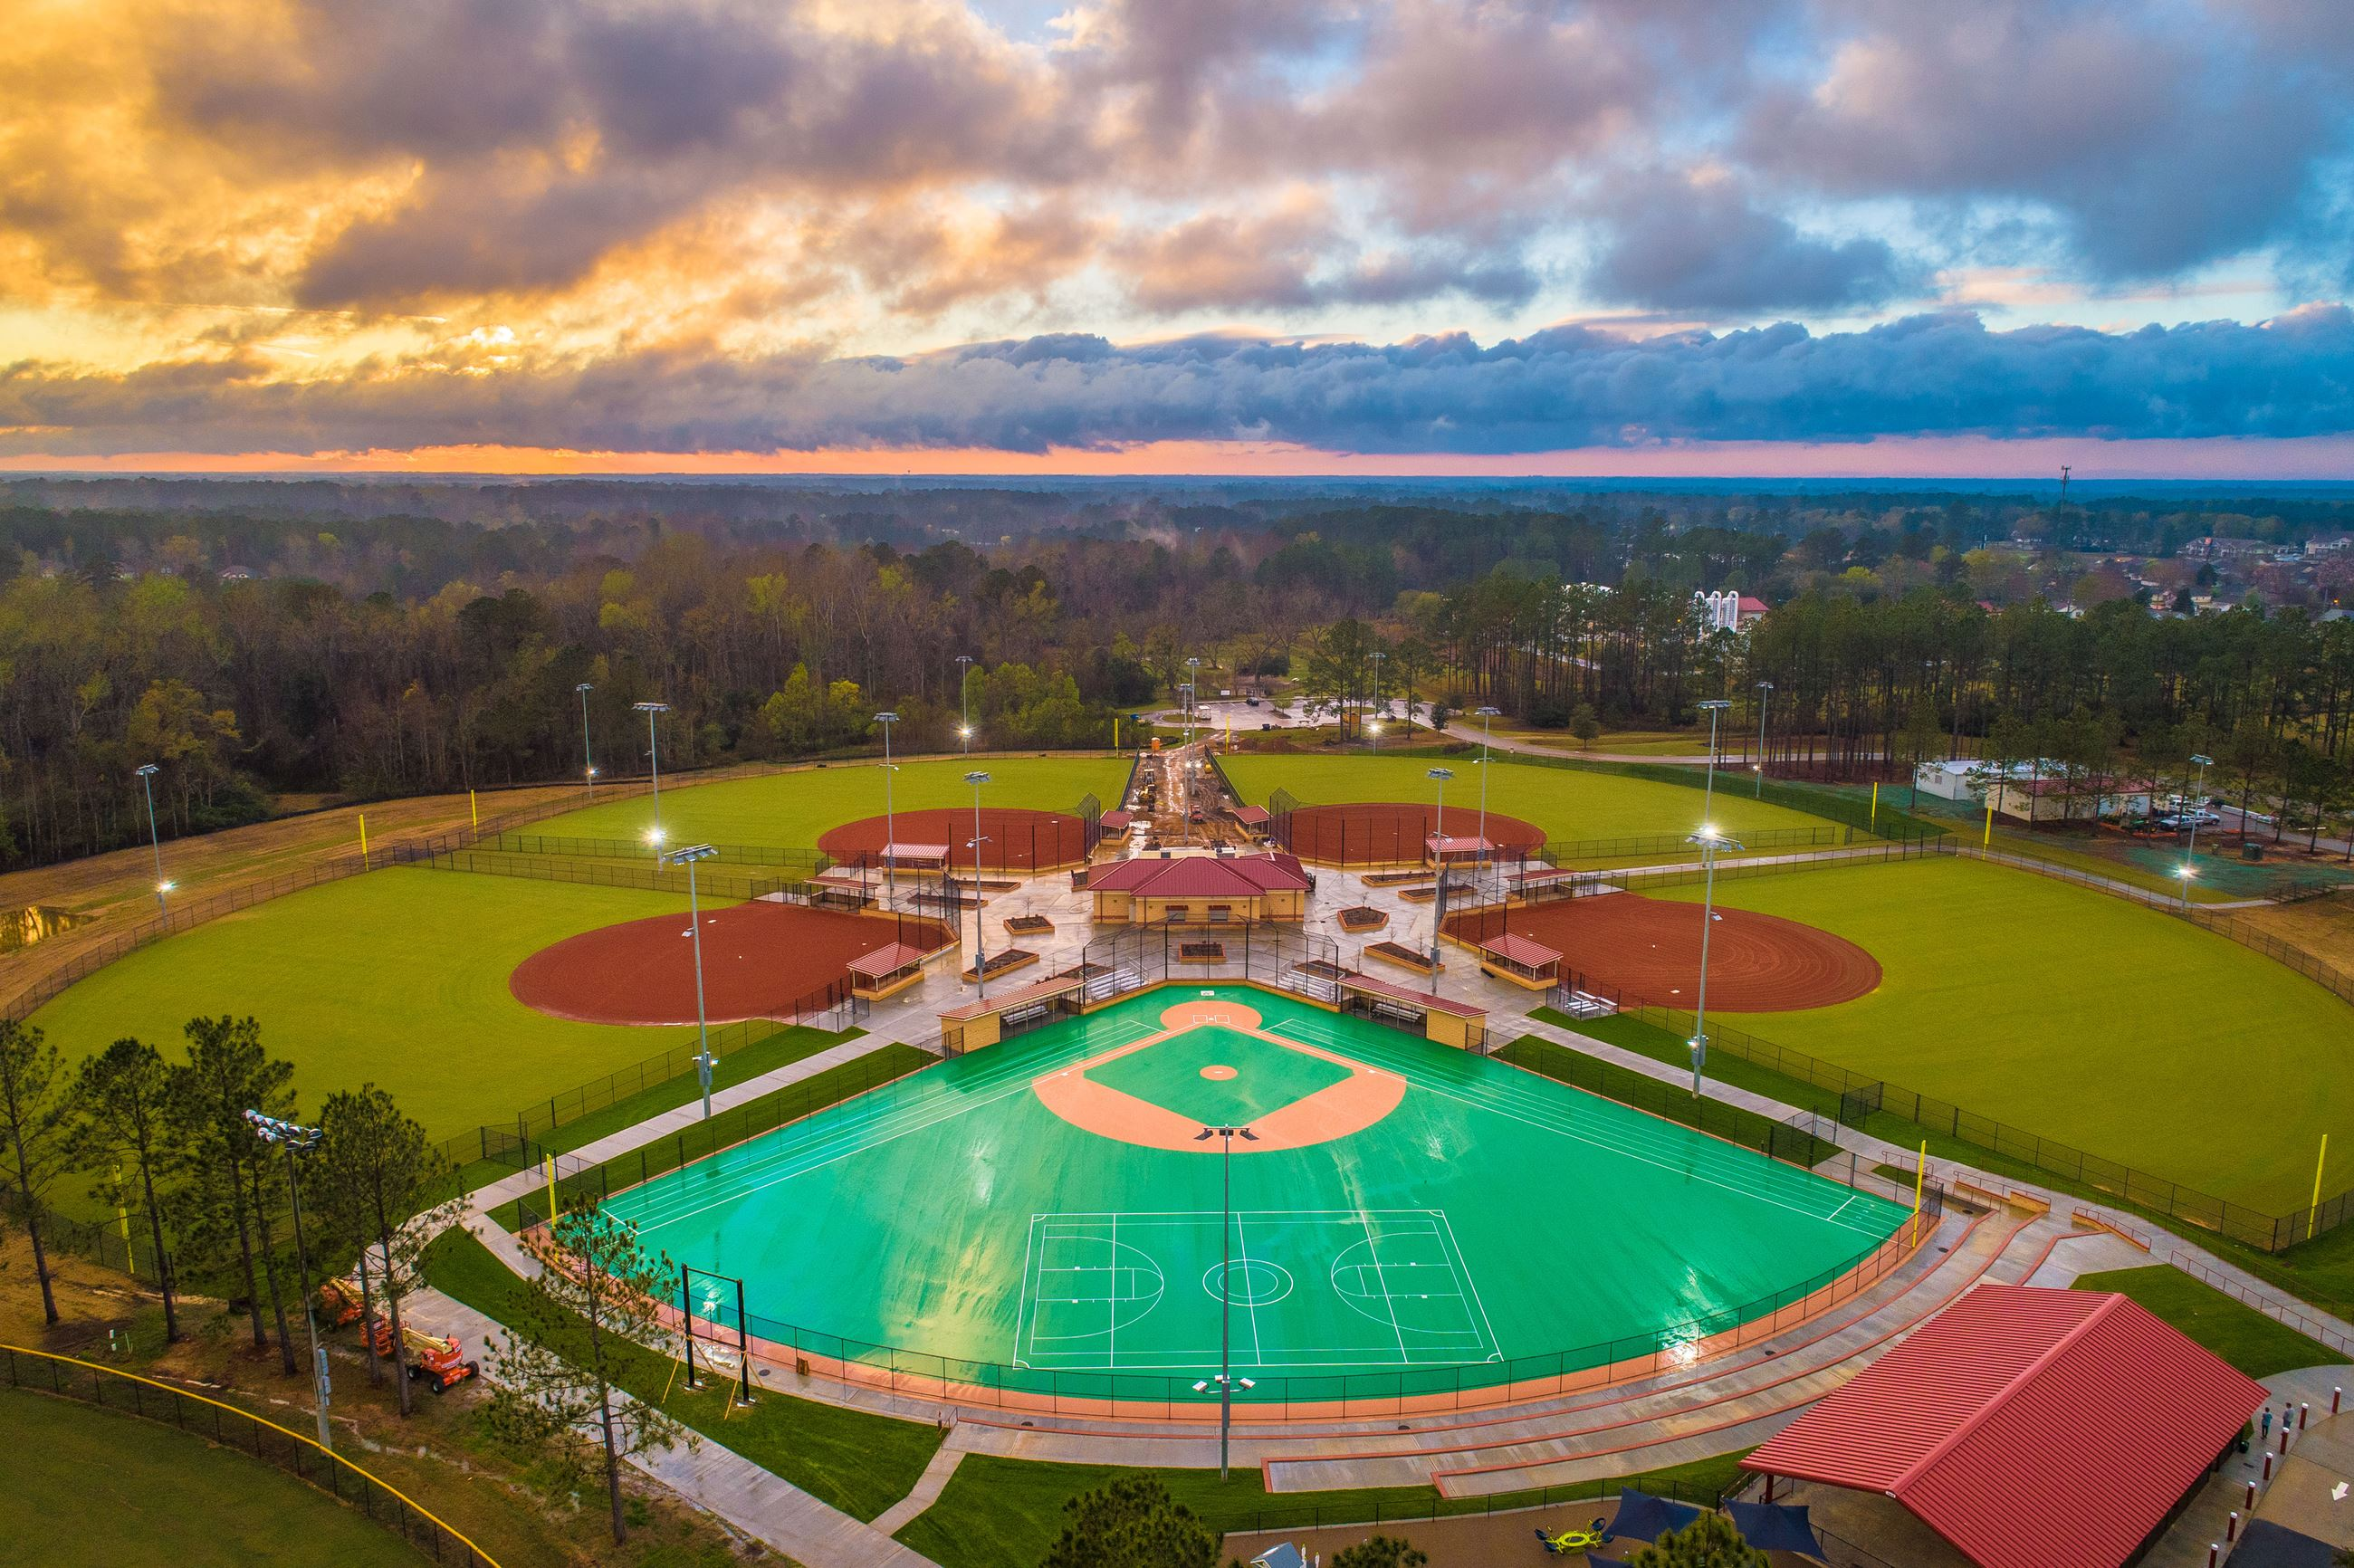 Aerial image of the Miracle Field with a sunset in the background.